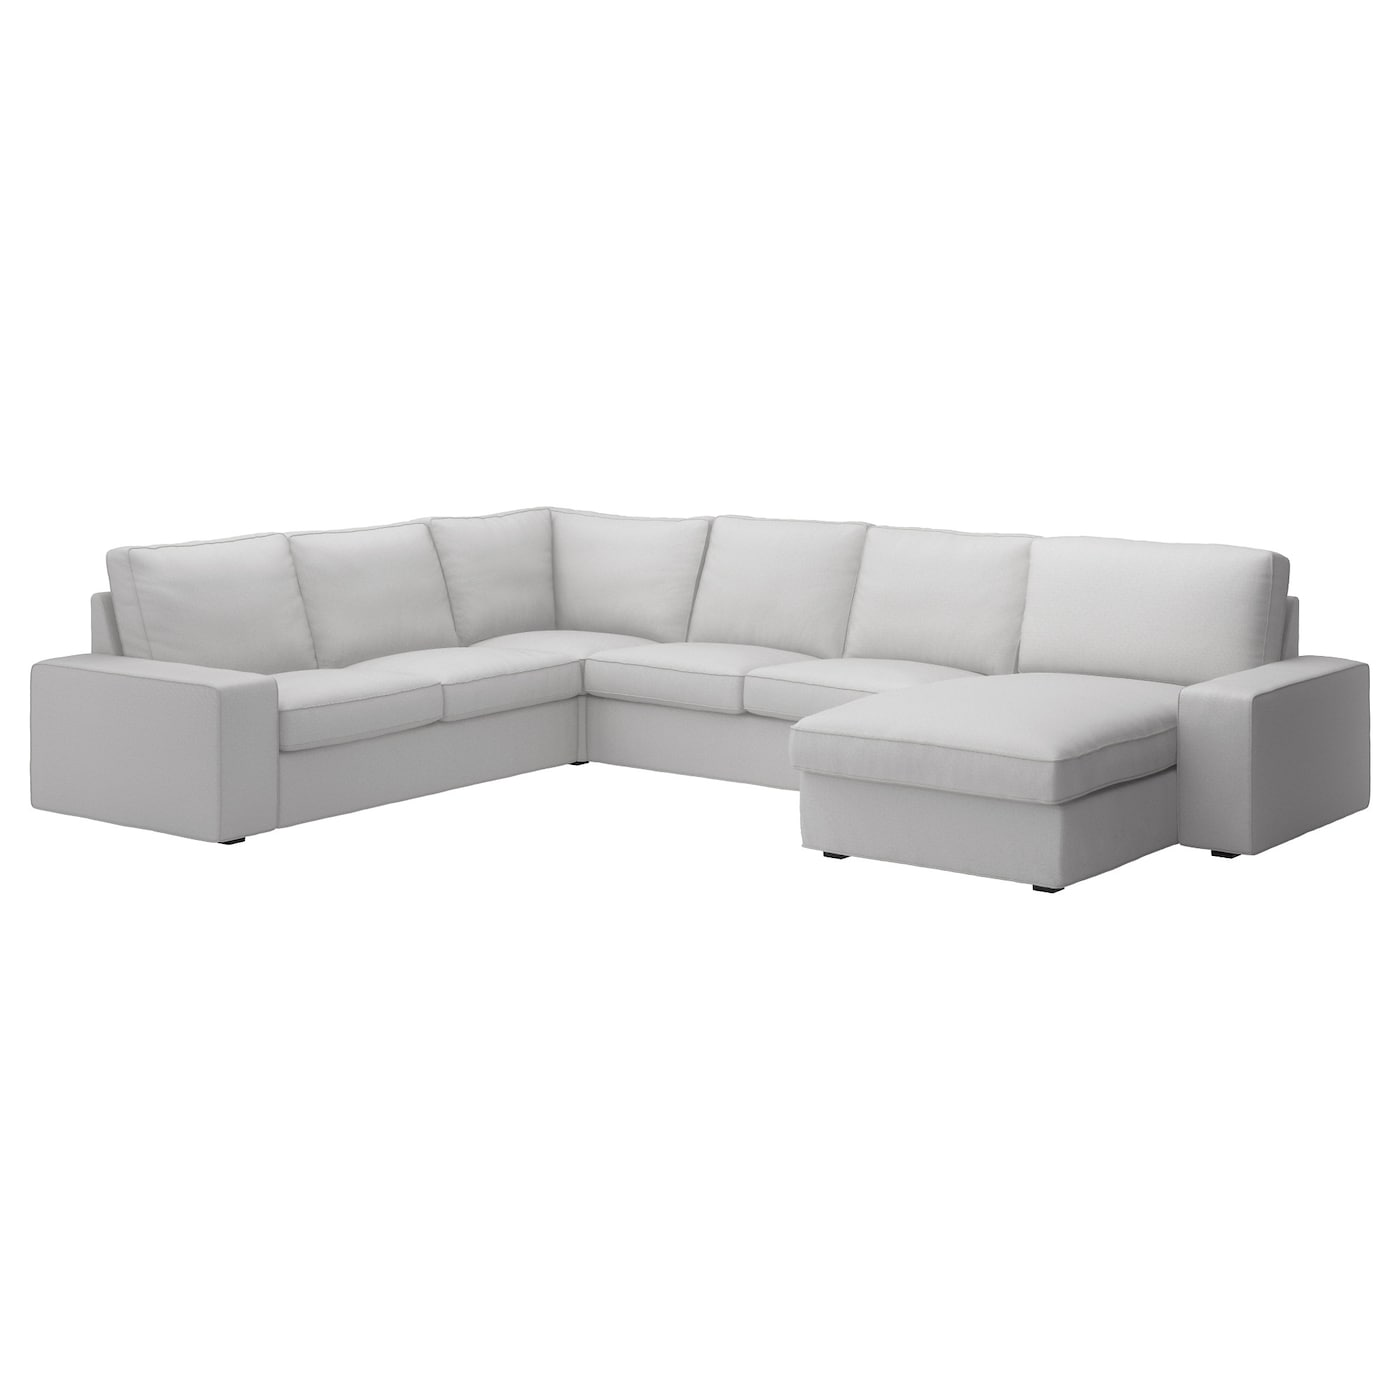 kivik corner sofa 2 2 with chaise longue ramna light grey. Black Bedroom Furniture Sets. Home Design Ideas